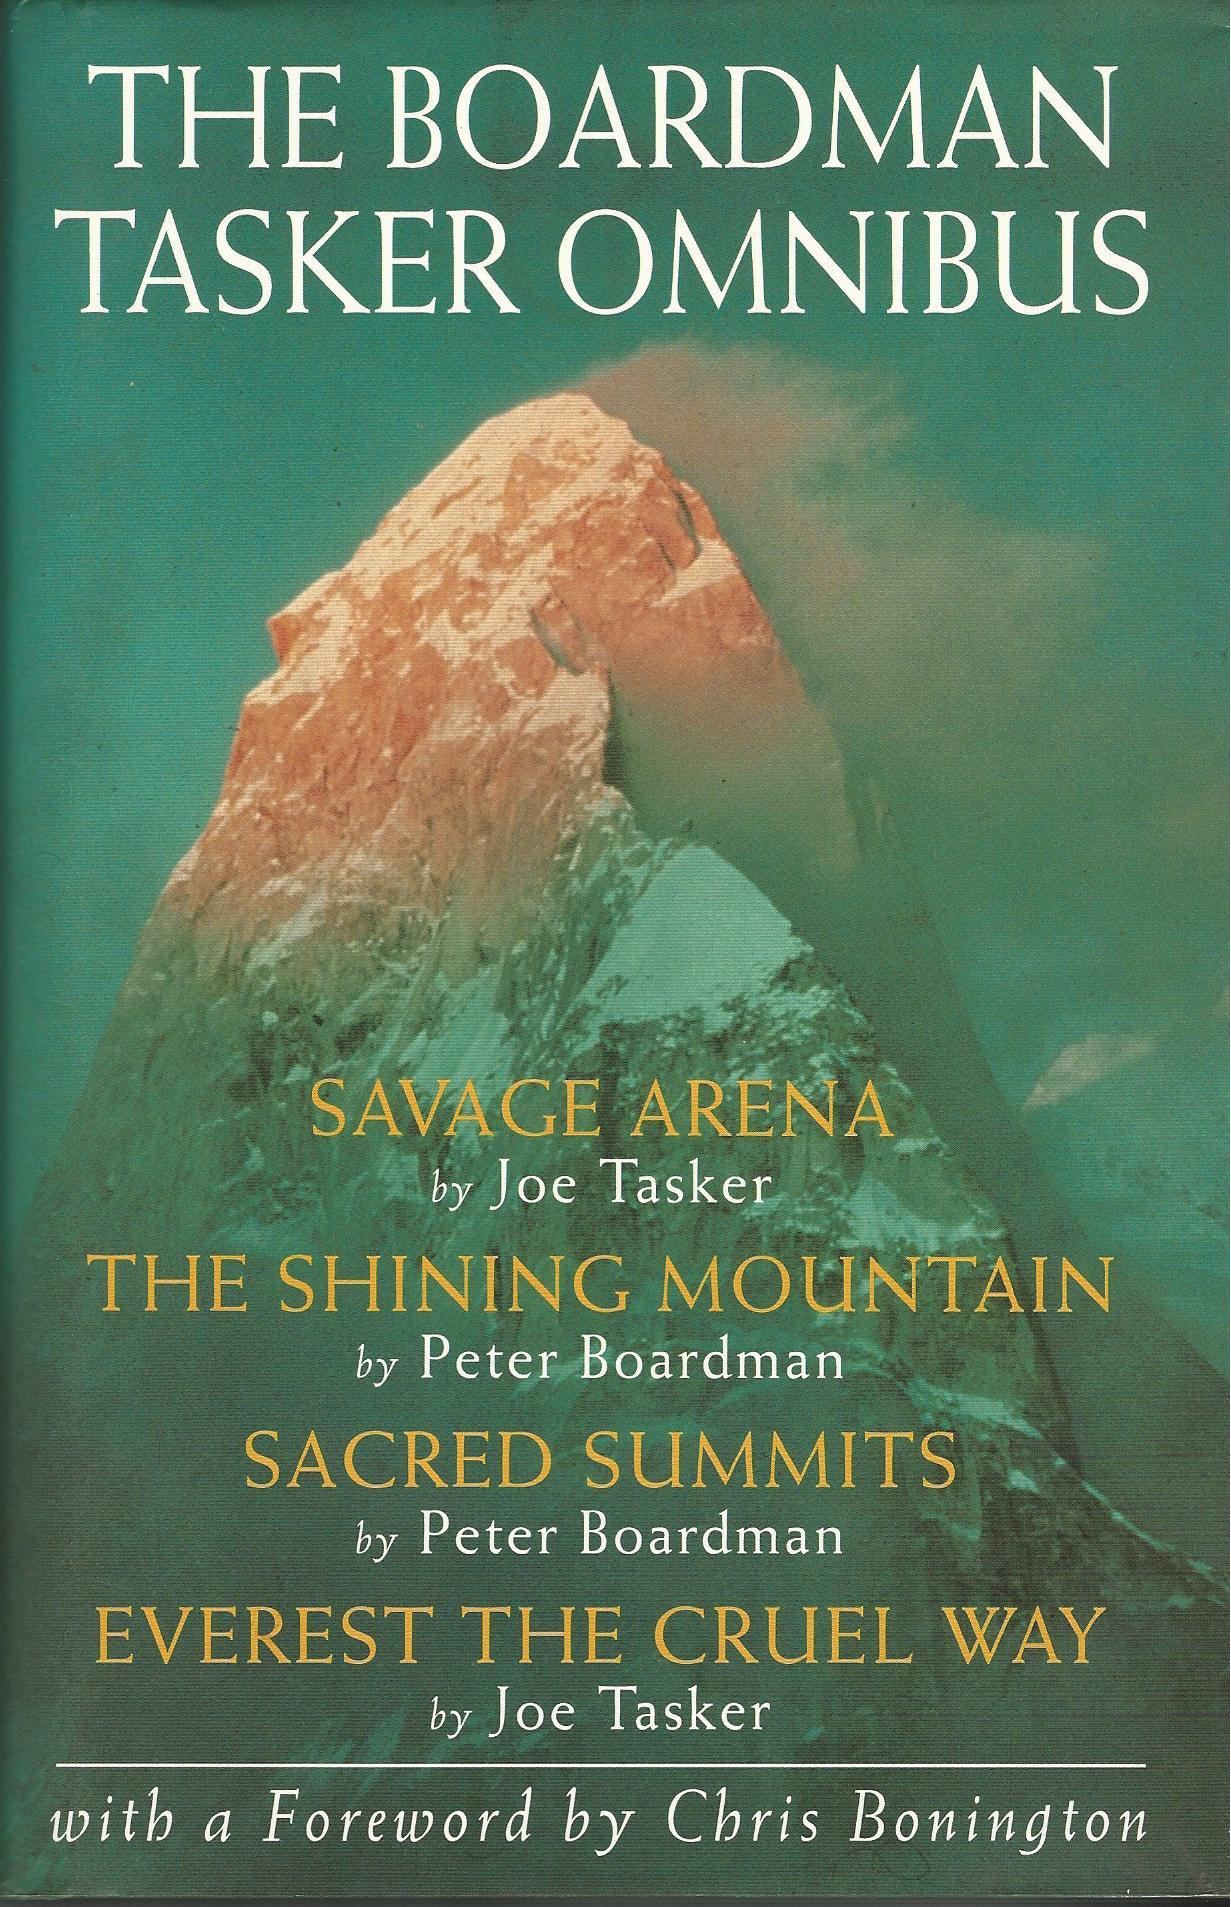 Image for The Boardman Tasker Omnibus: Savage Arena / The Shining Mountain / Sacred Summits / Everest the Cruel Way